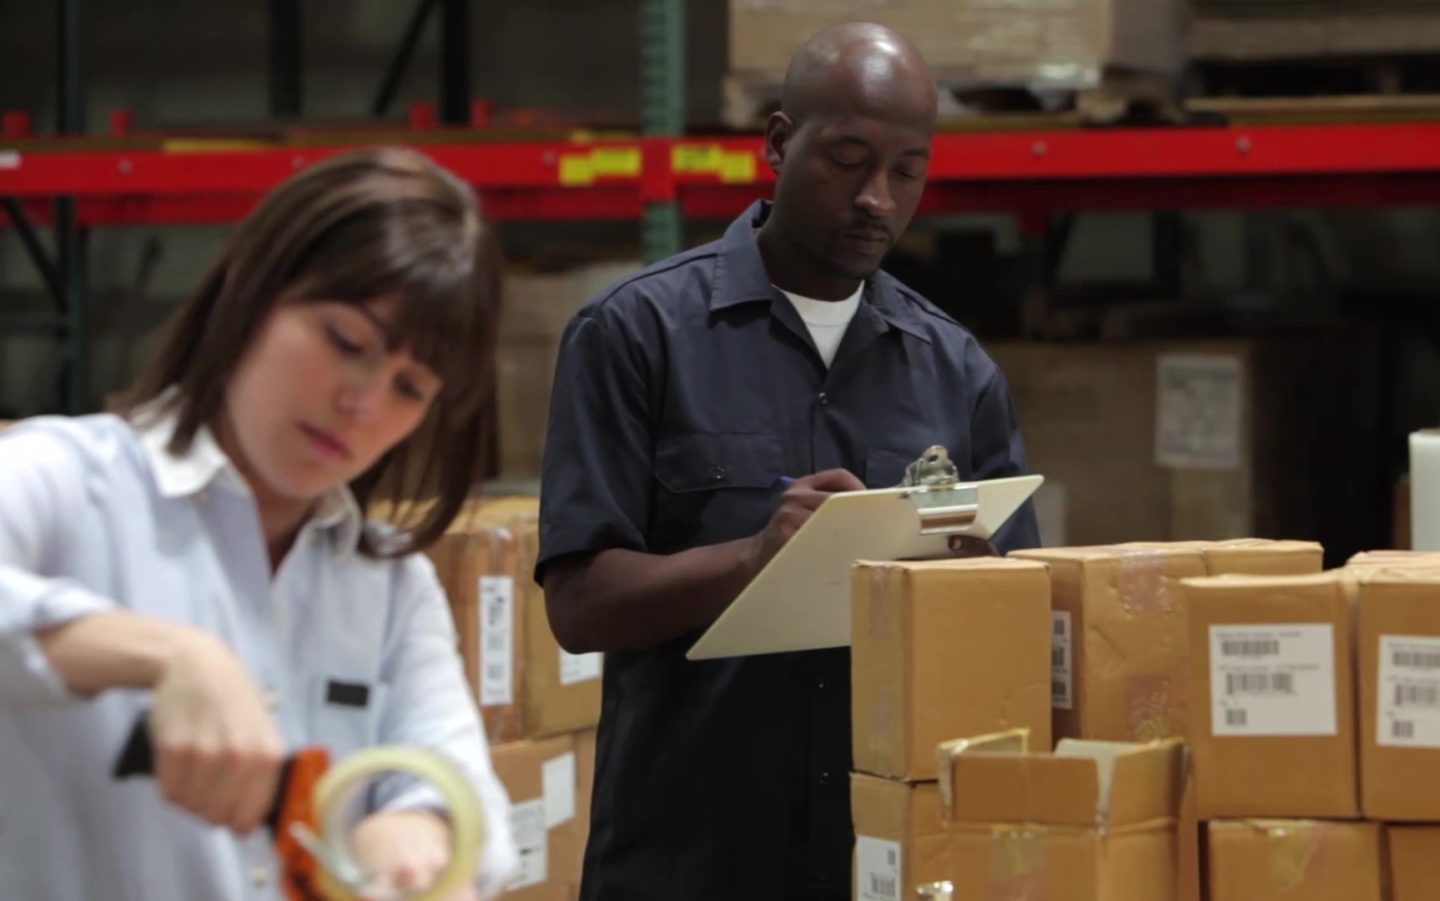 A man and a woman working in a warehouse.